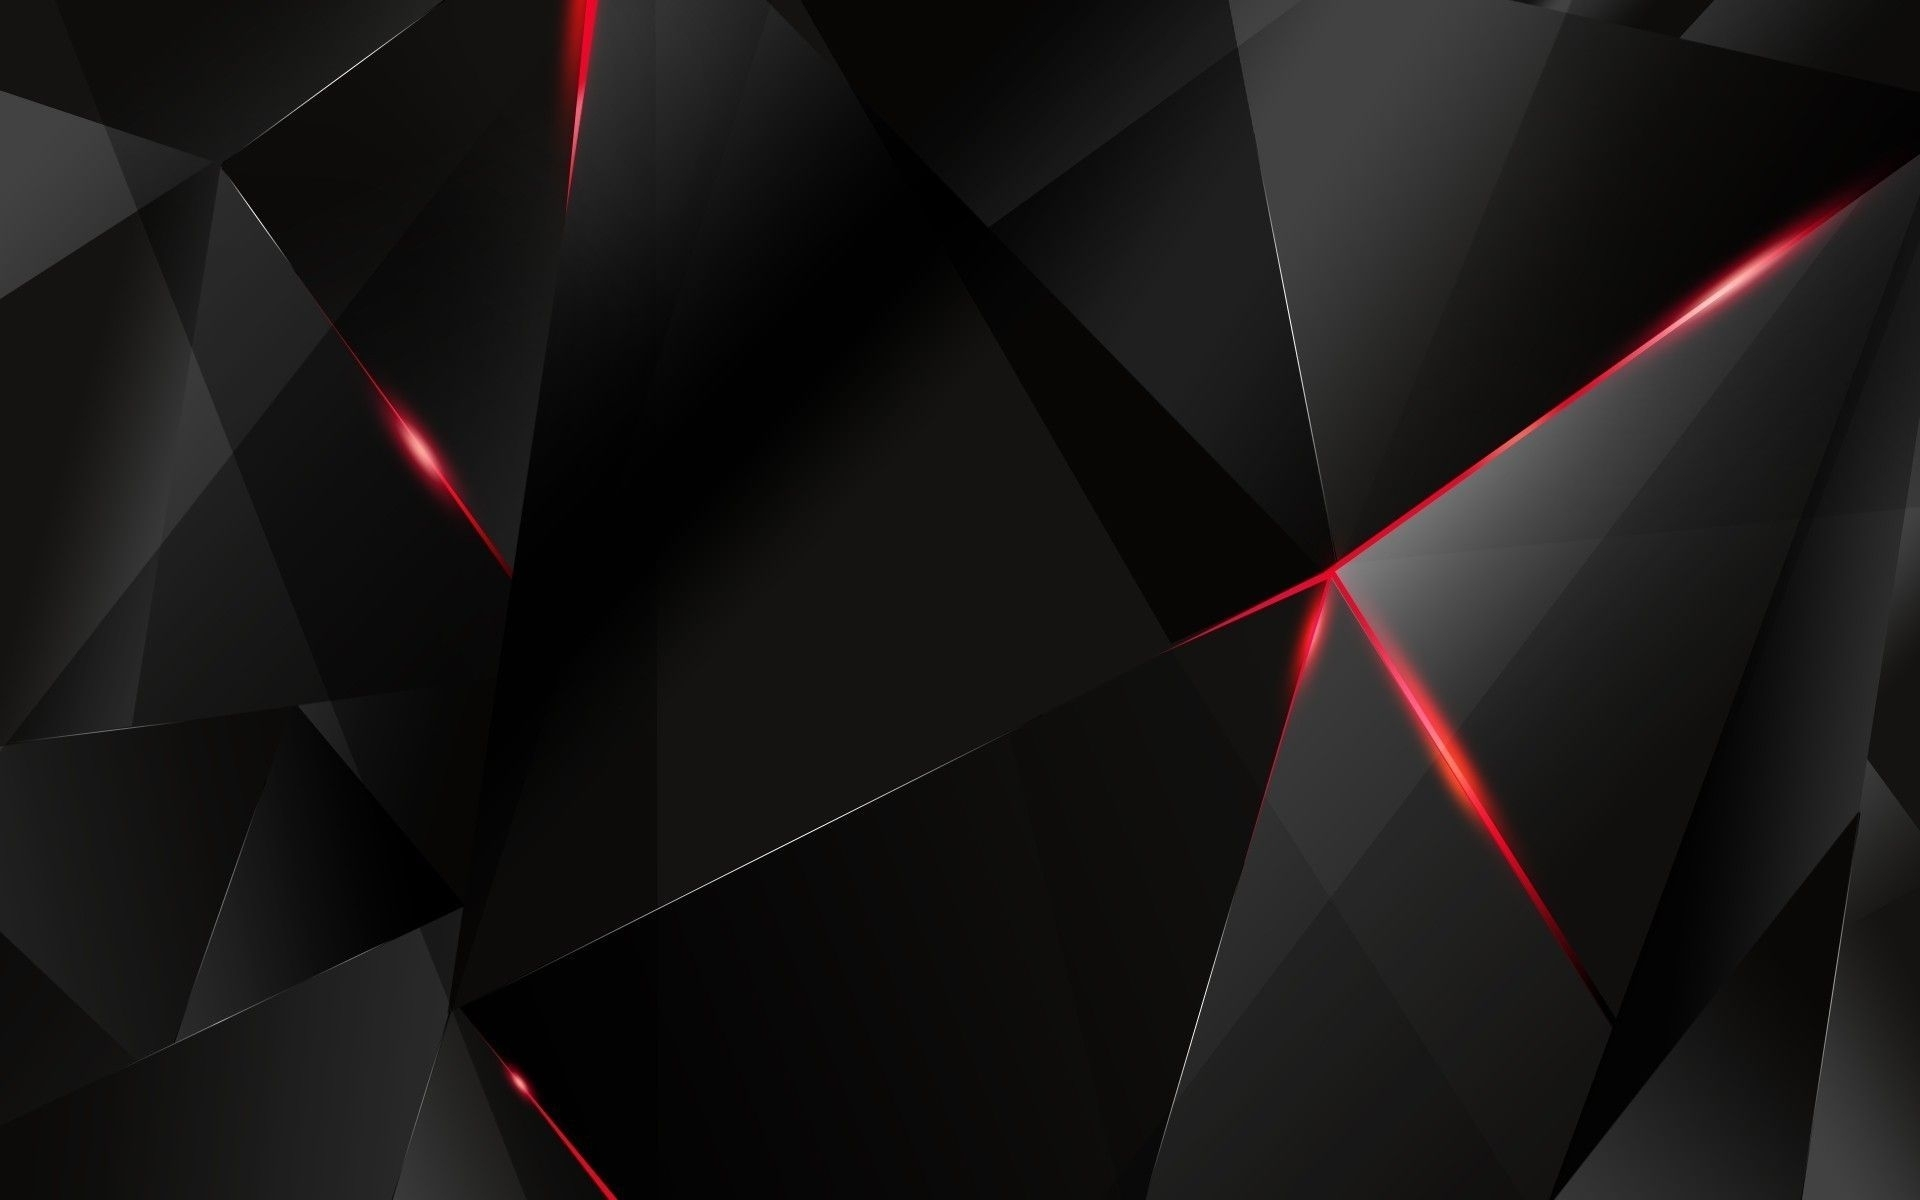 10 Most Popular Red And Black Desktop Backgrounds FULL HD 1080p For PC Background